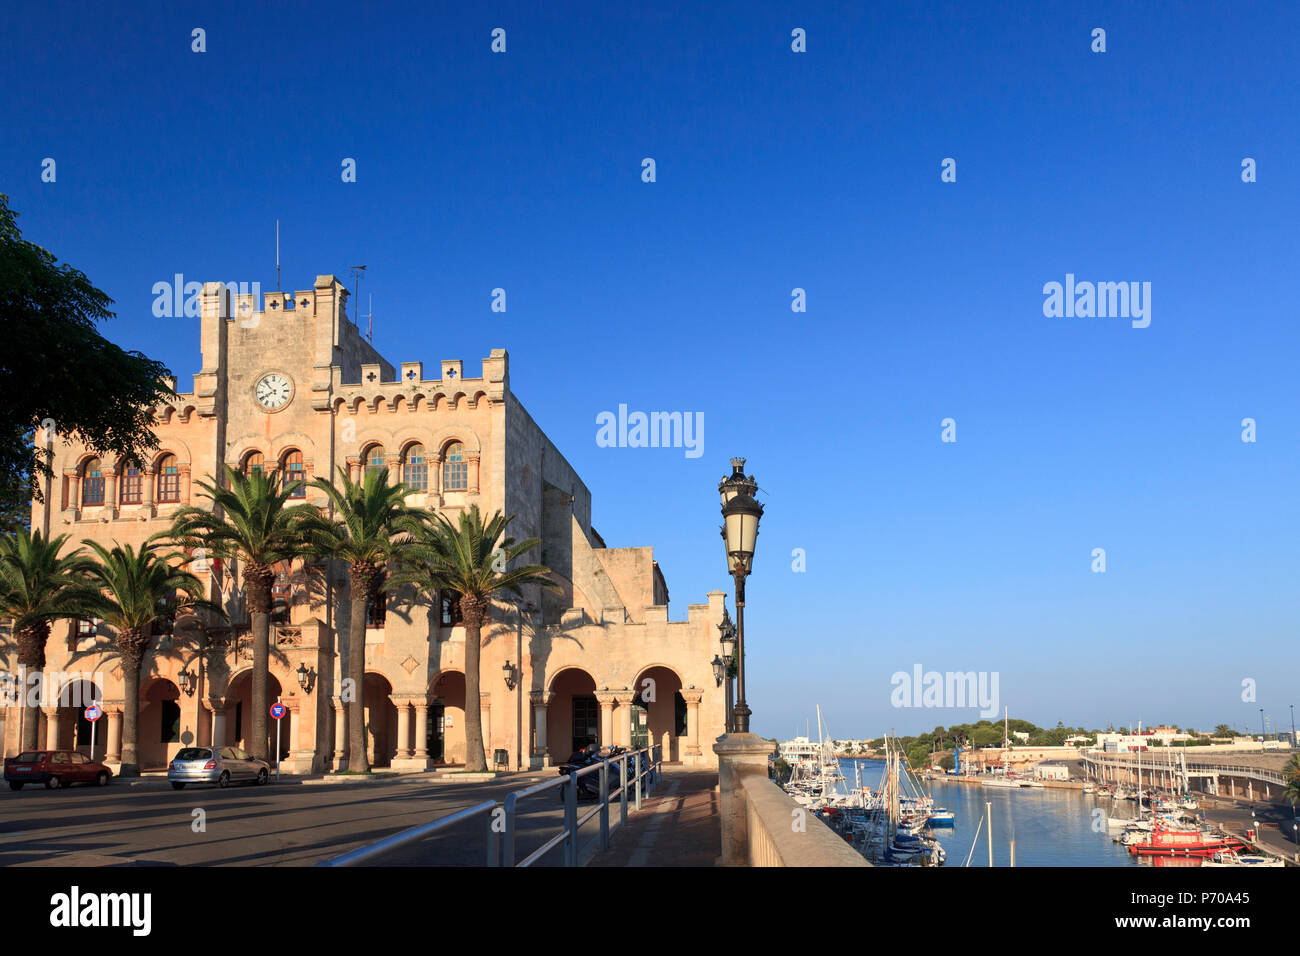 Spain, Balearic Islands, Menorca, Ciutadella, Old Town - Stock Image